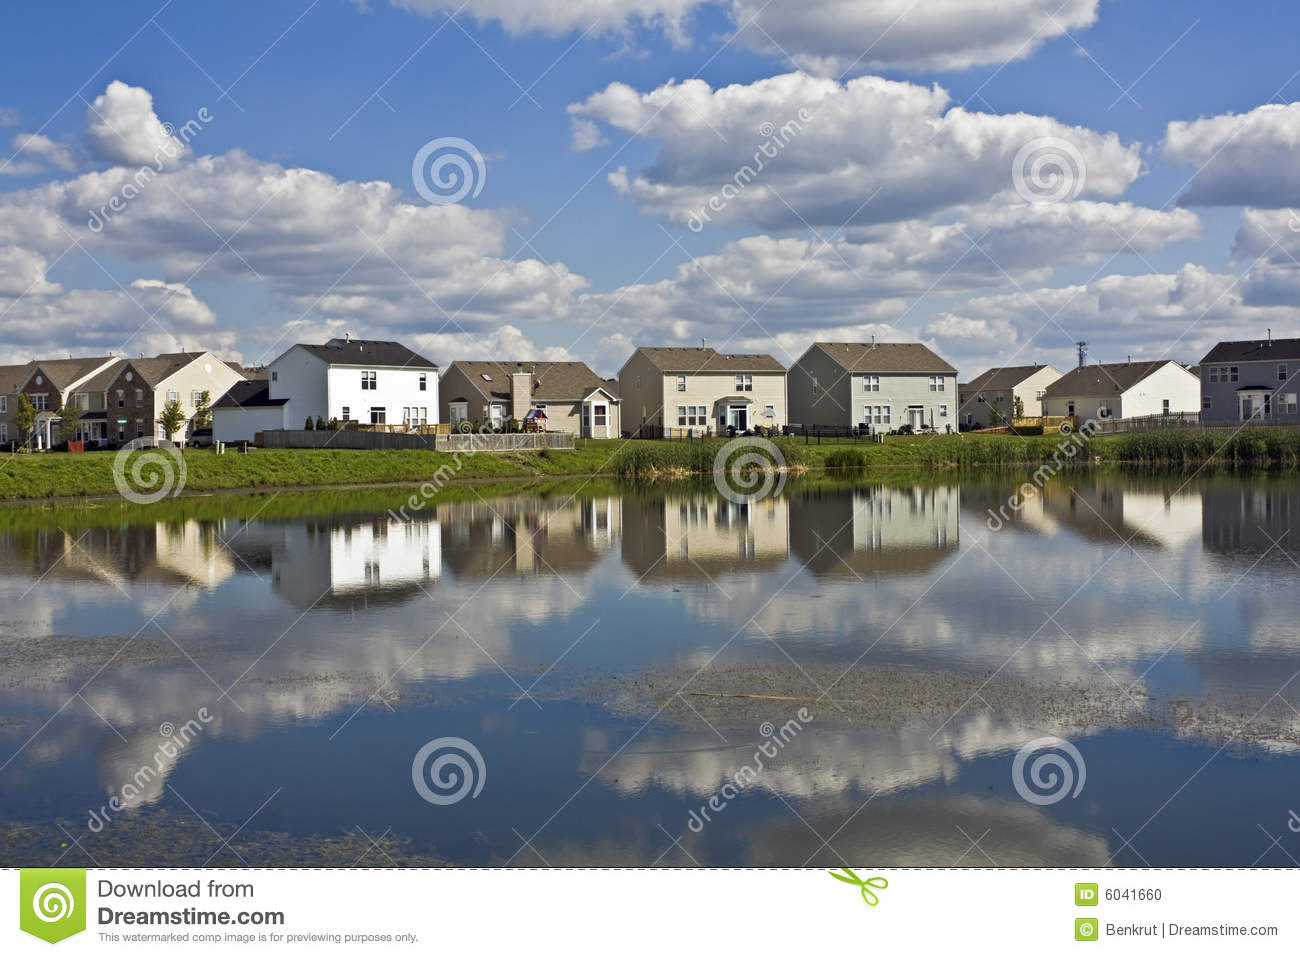 Stock Photo: Suburban community: https://www.dreamstime.com/stock-photo-suburban-community-image6041660